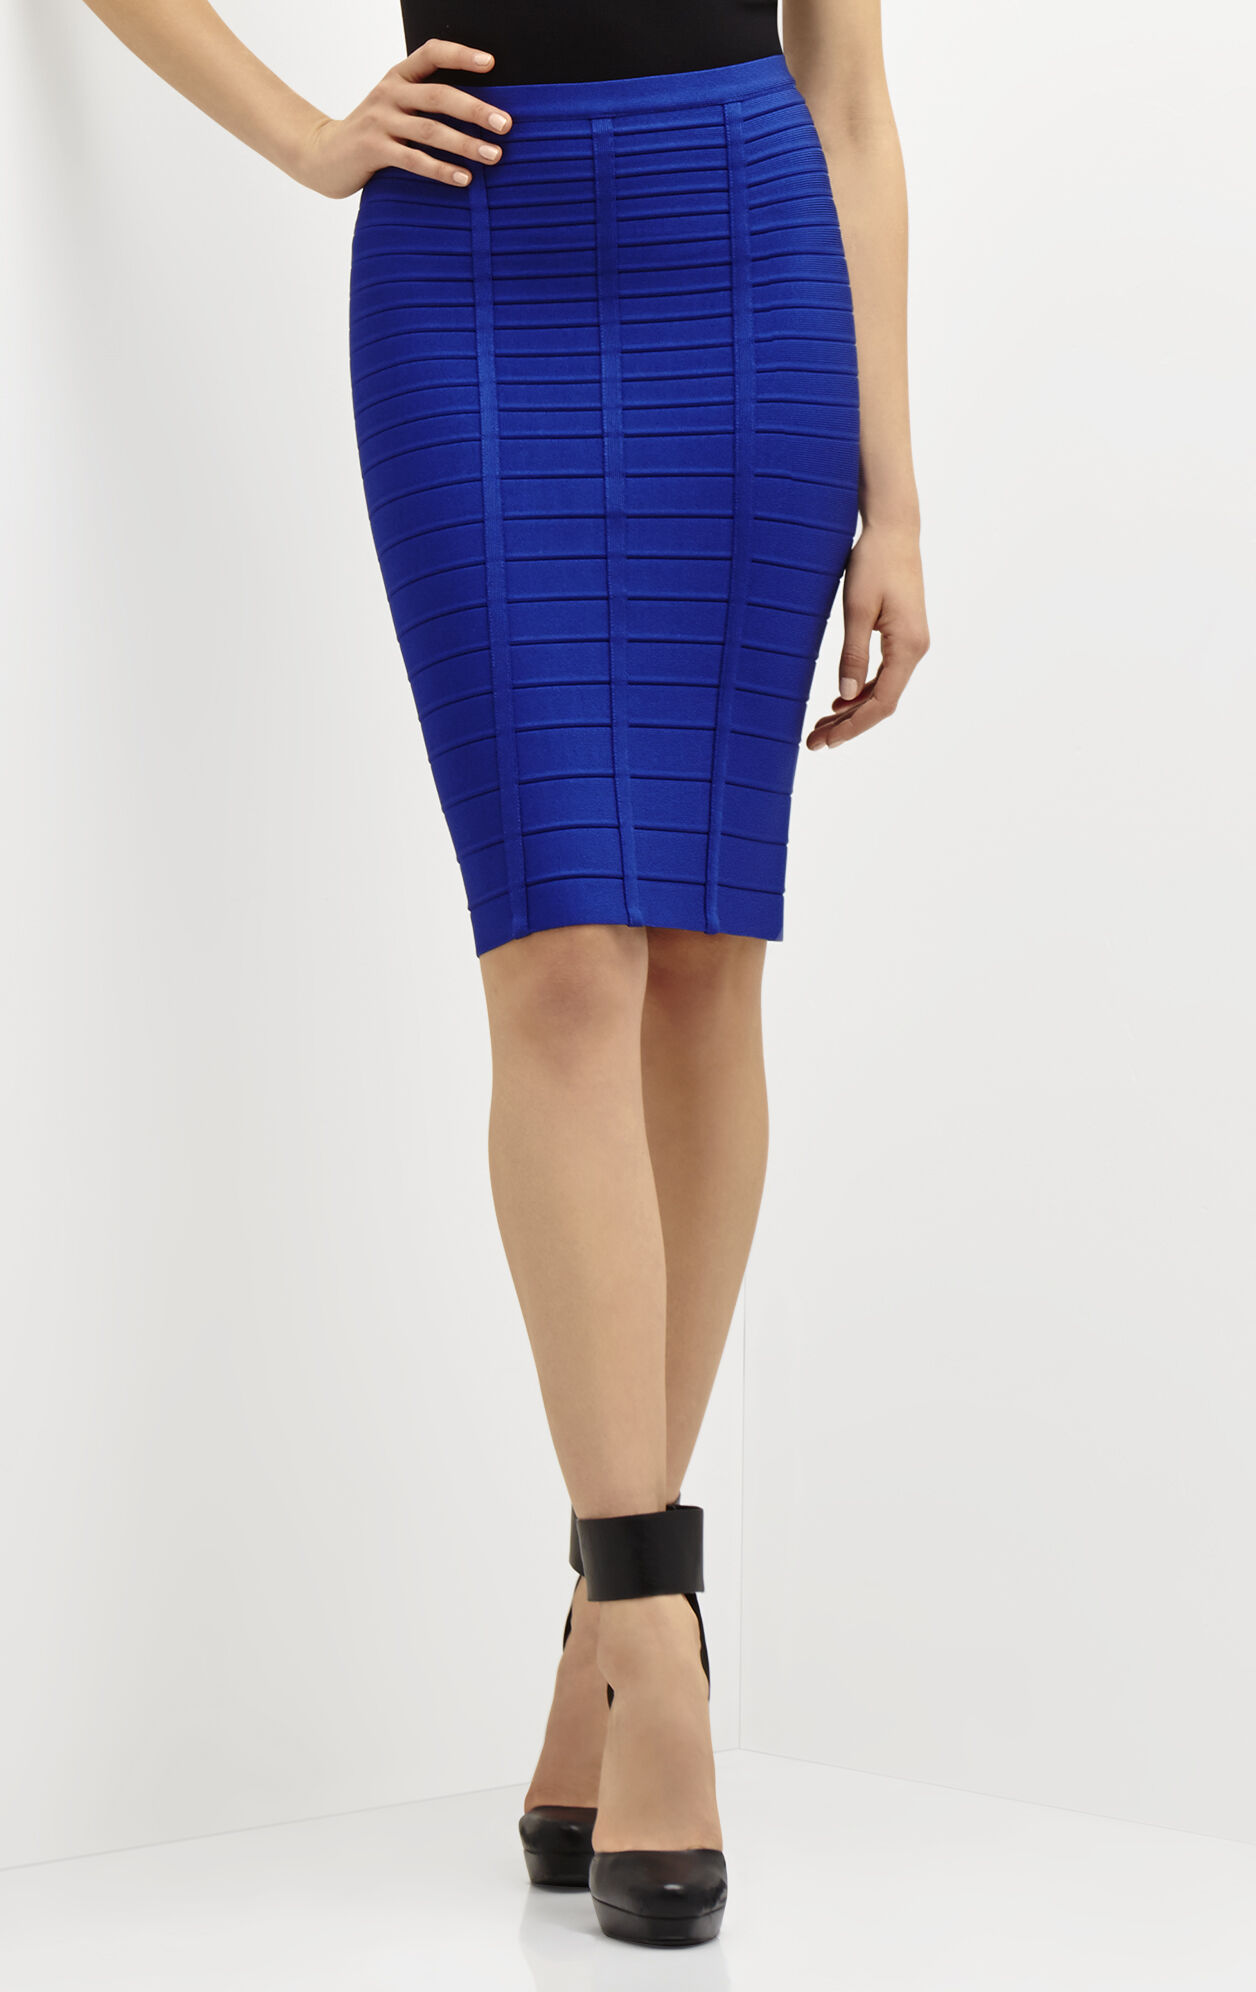 Sia Signature Essentials Pencil Skirt